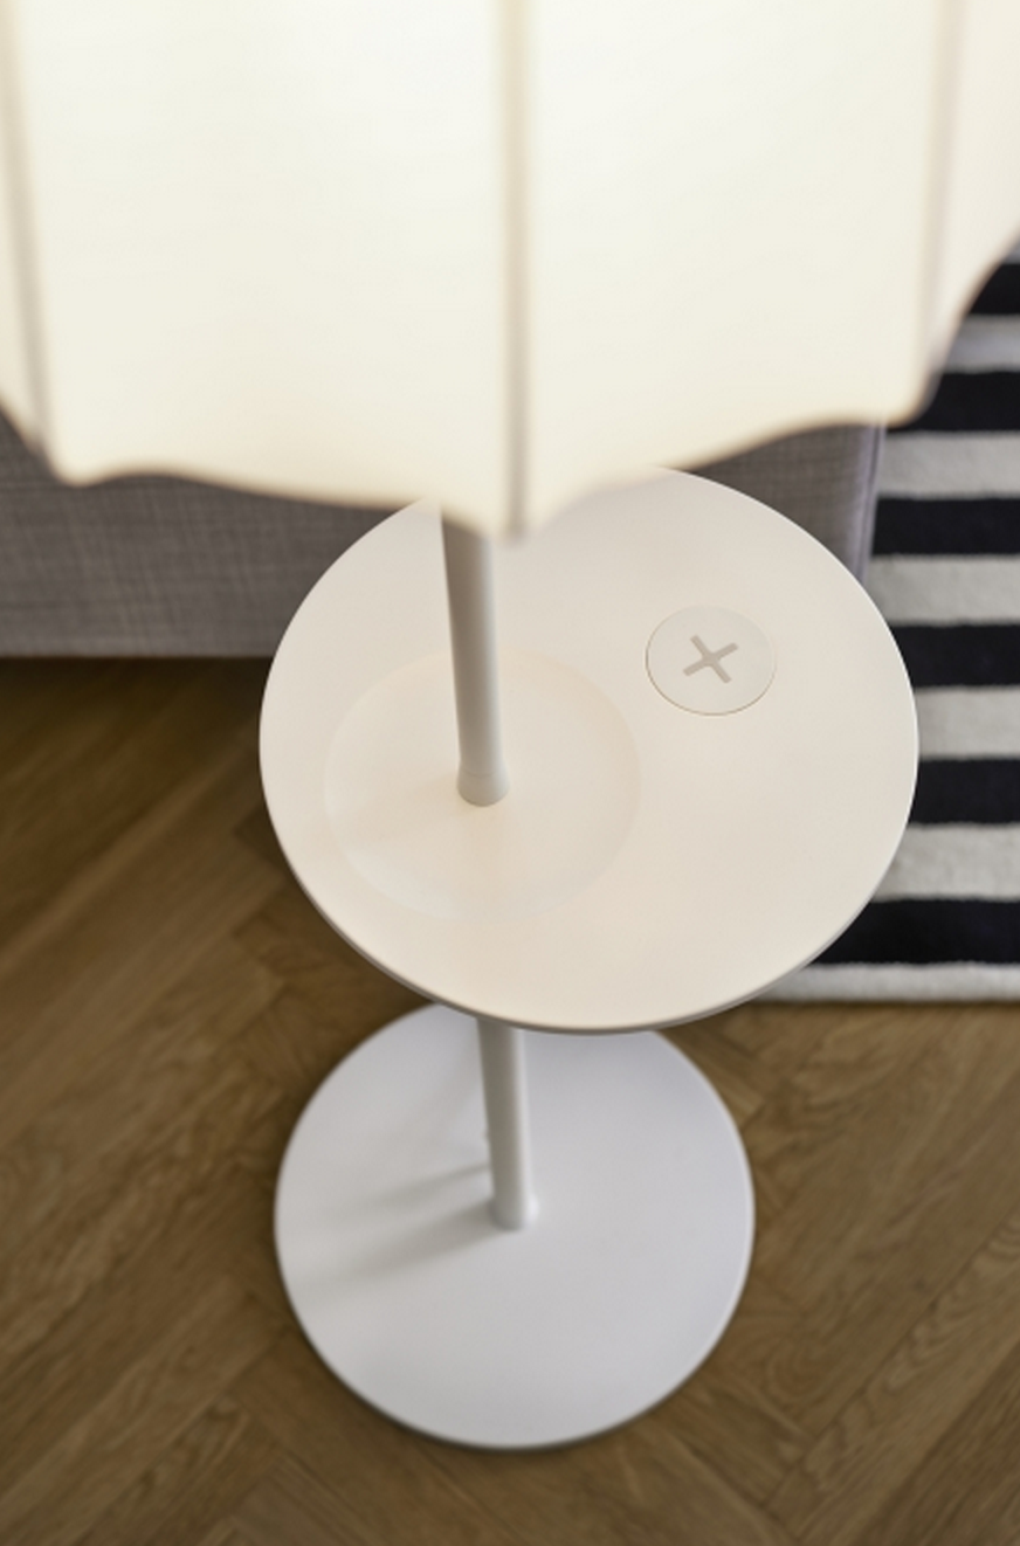 IKEA-Qi-wireless-charging-furniture-2.0